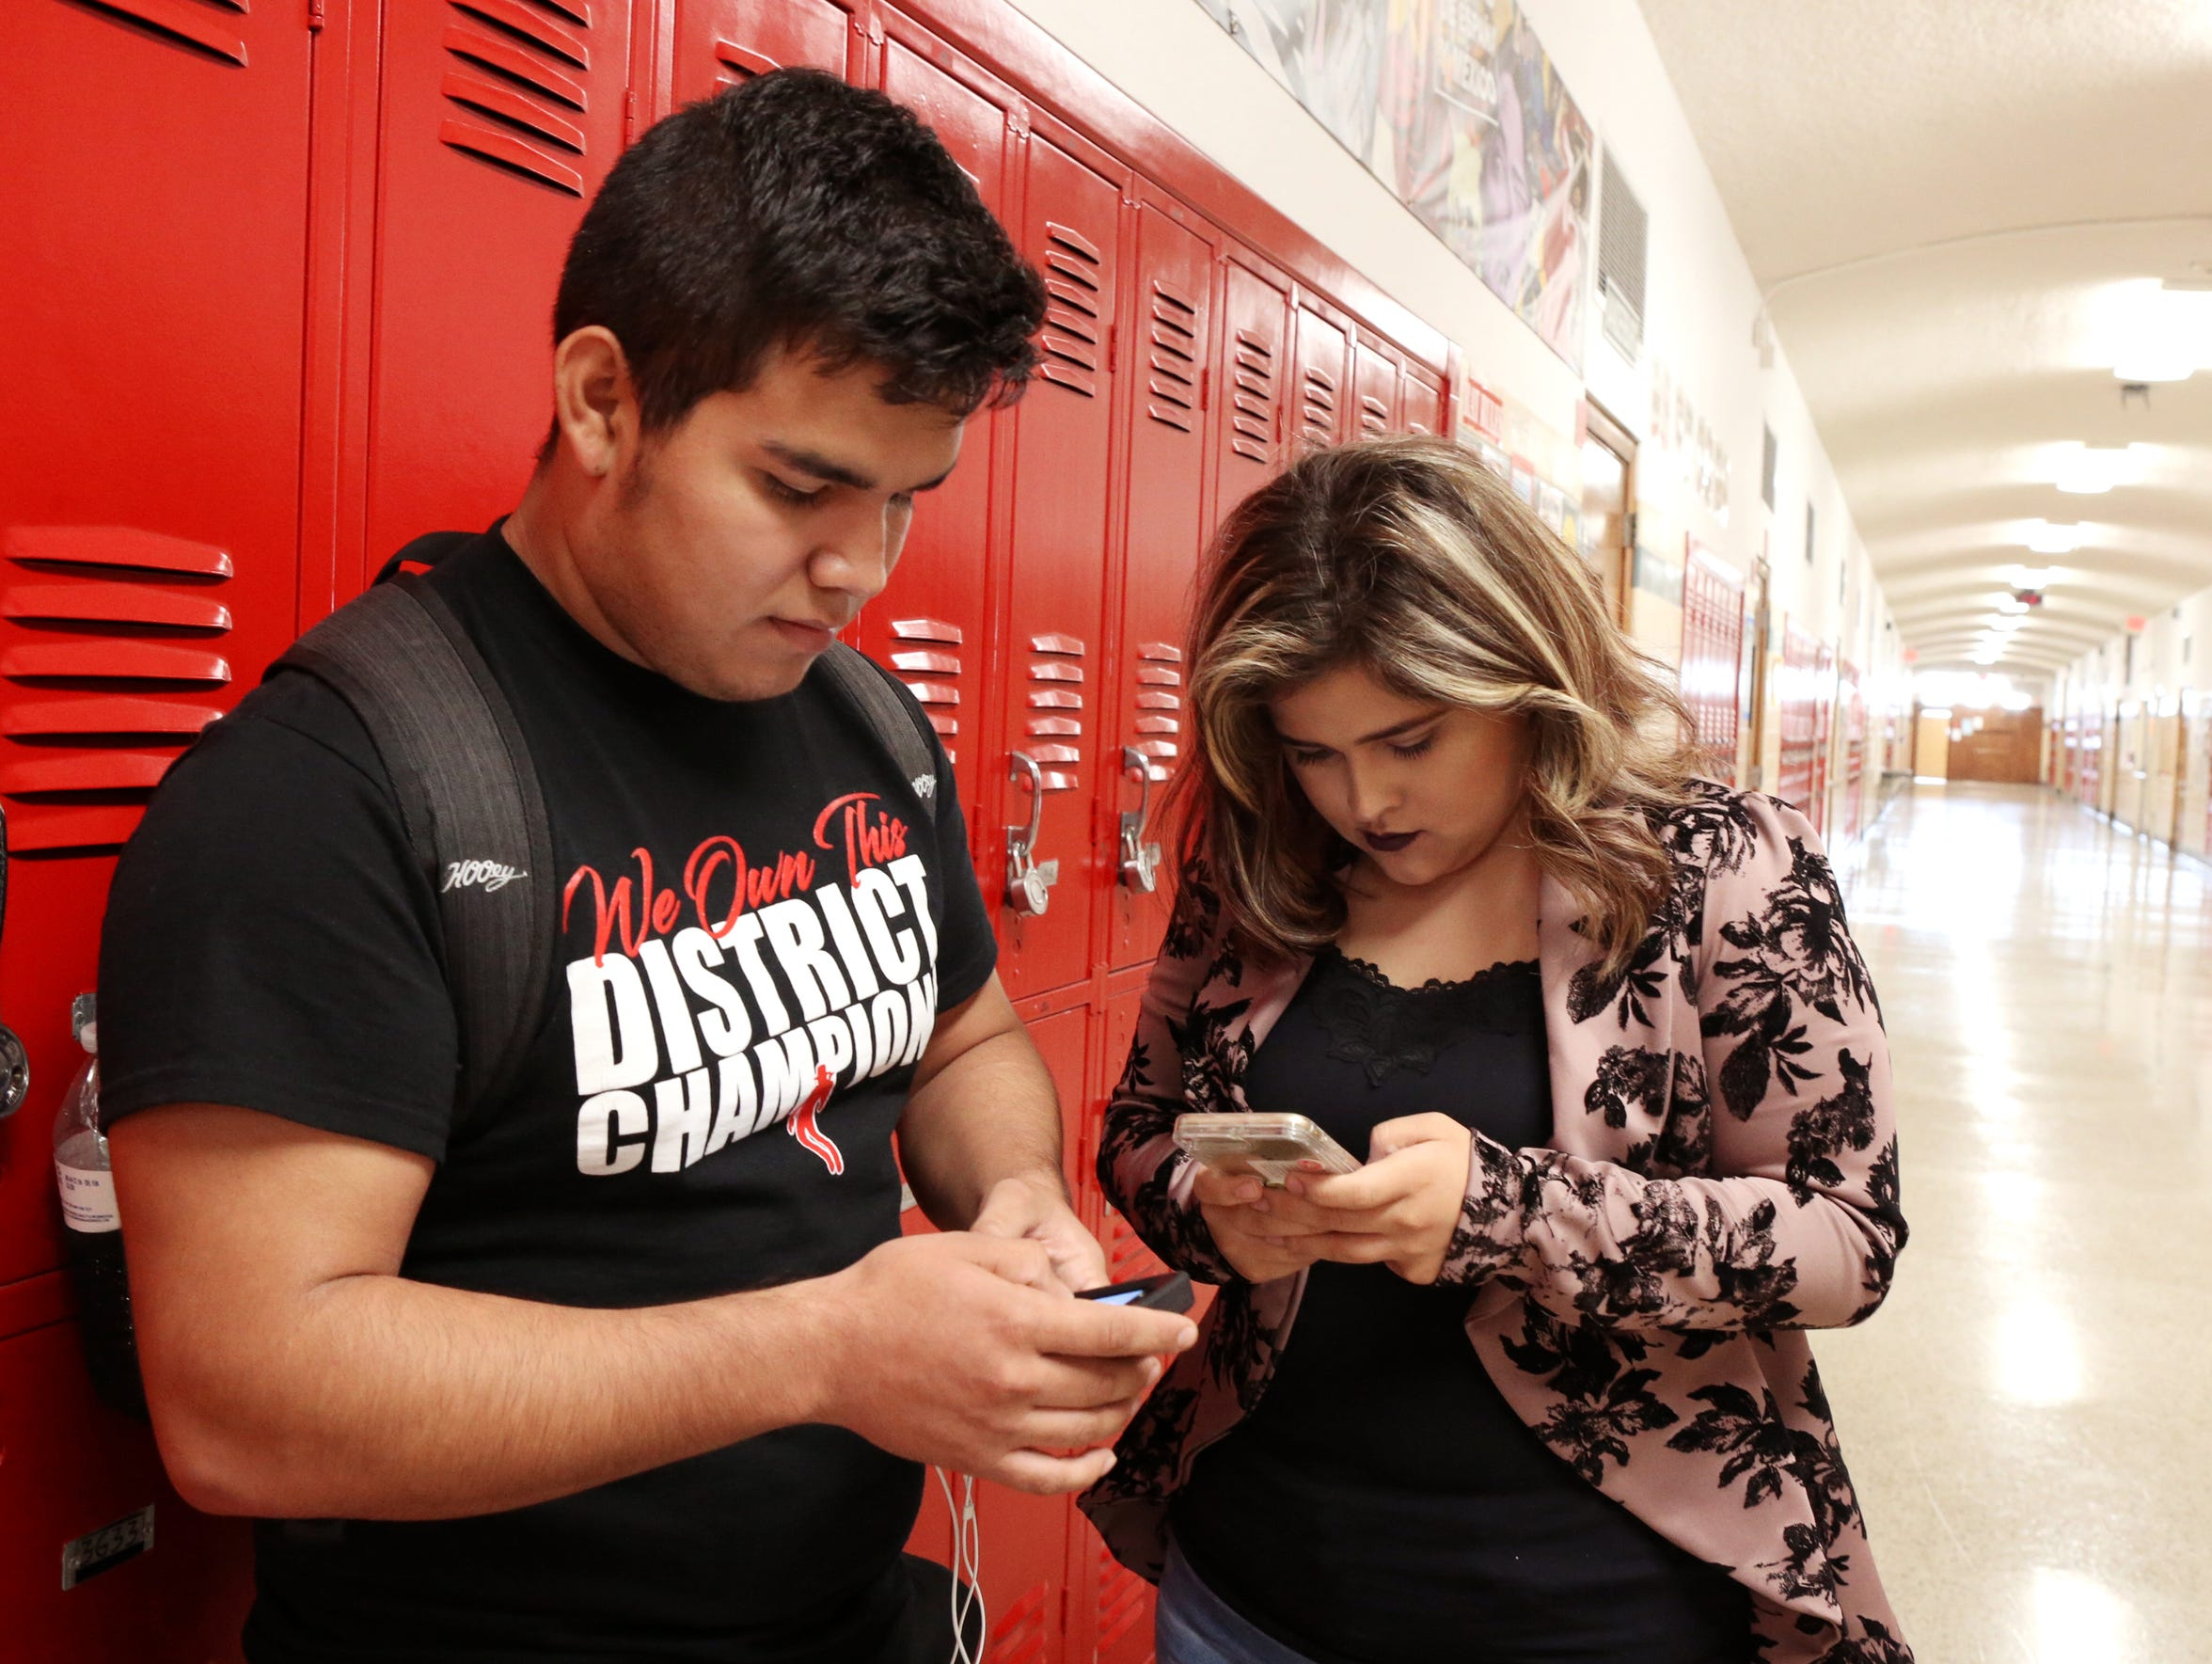 Sergio Alfaro, 19, and Claudia Jimenez, 17, hang out